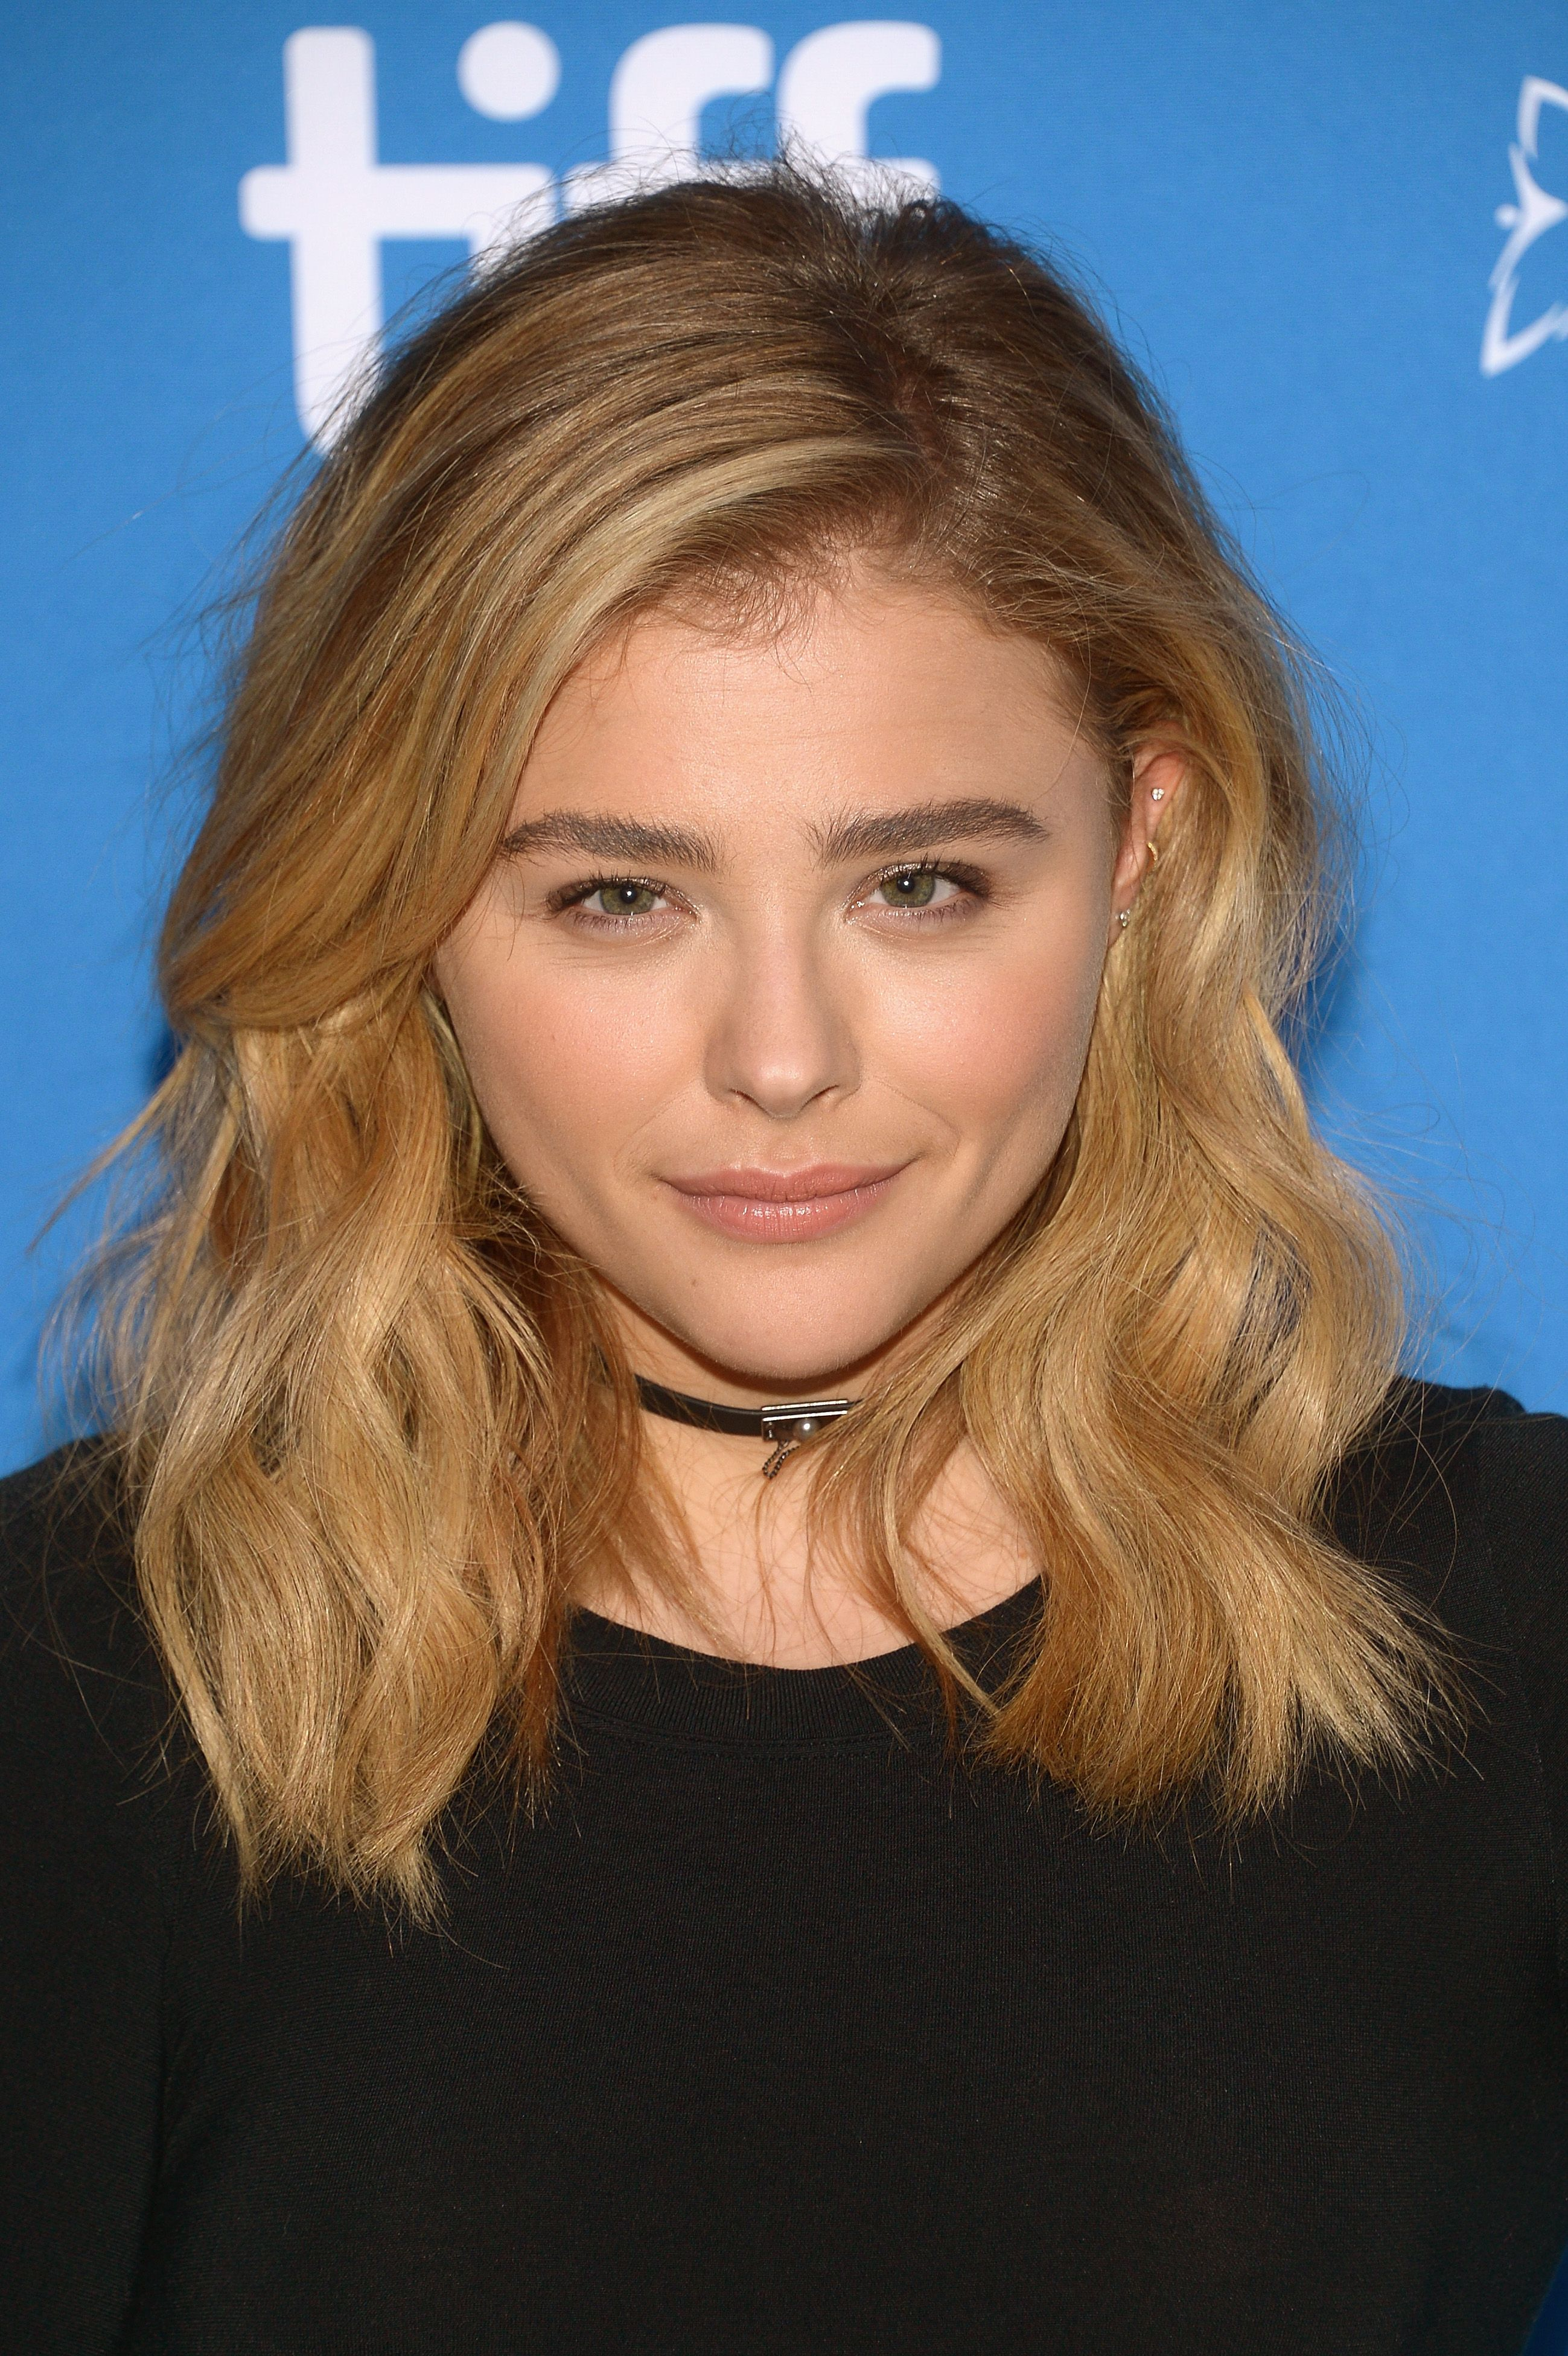 Chloe Moretz S Dog Just Died And Her Insta Post Will Make You Weep